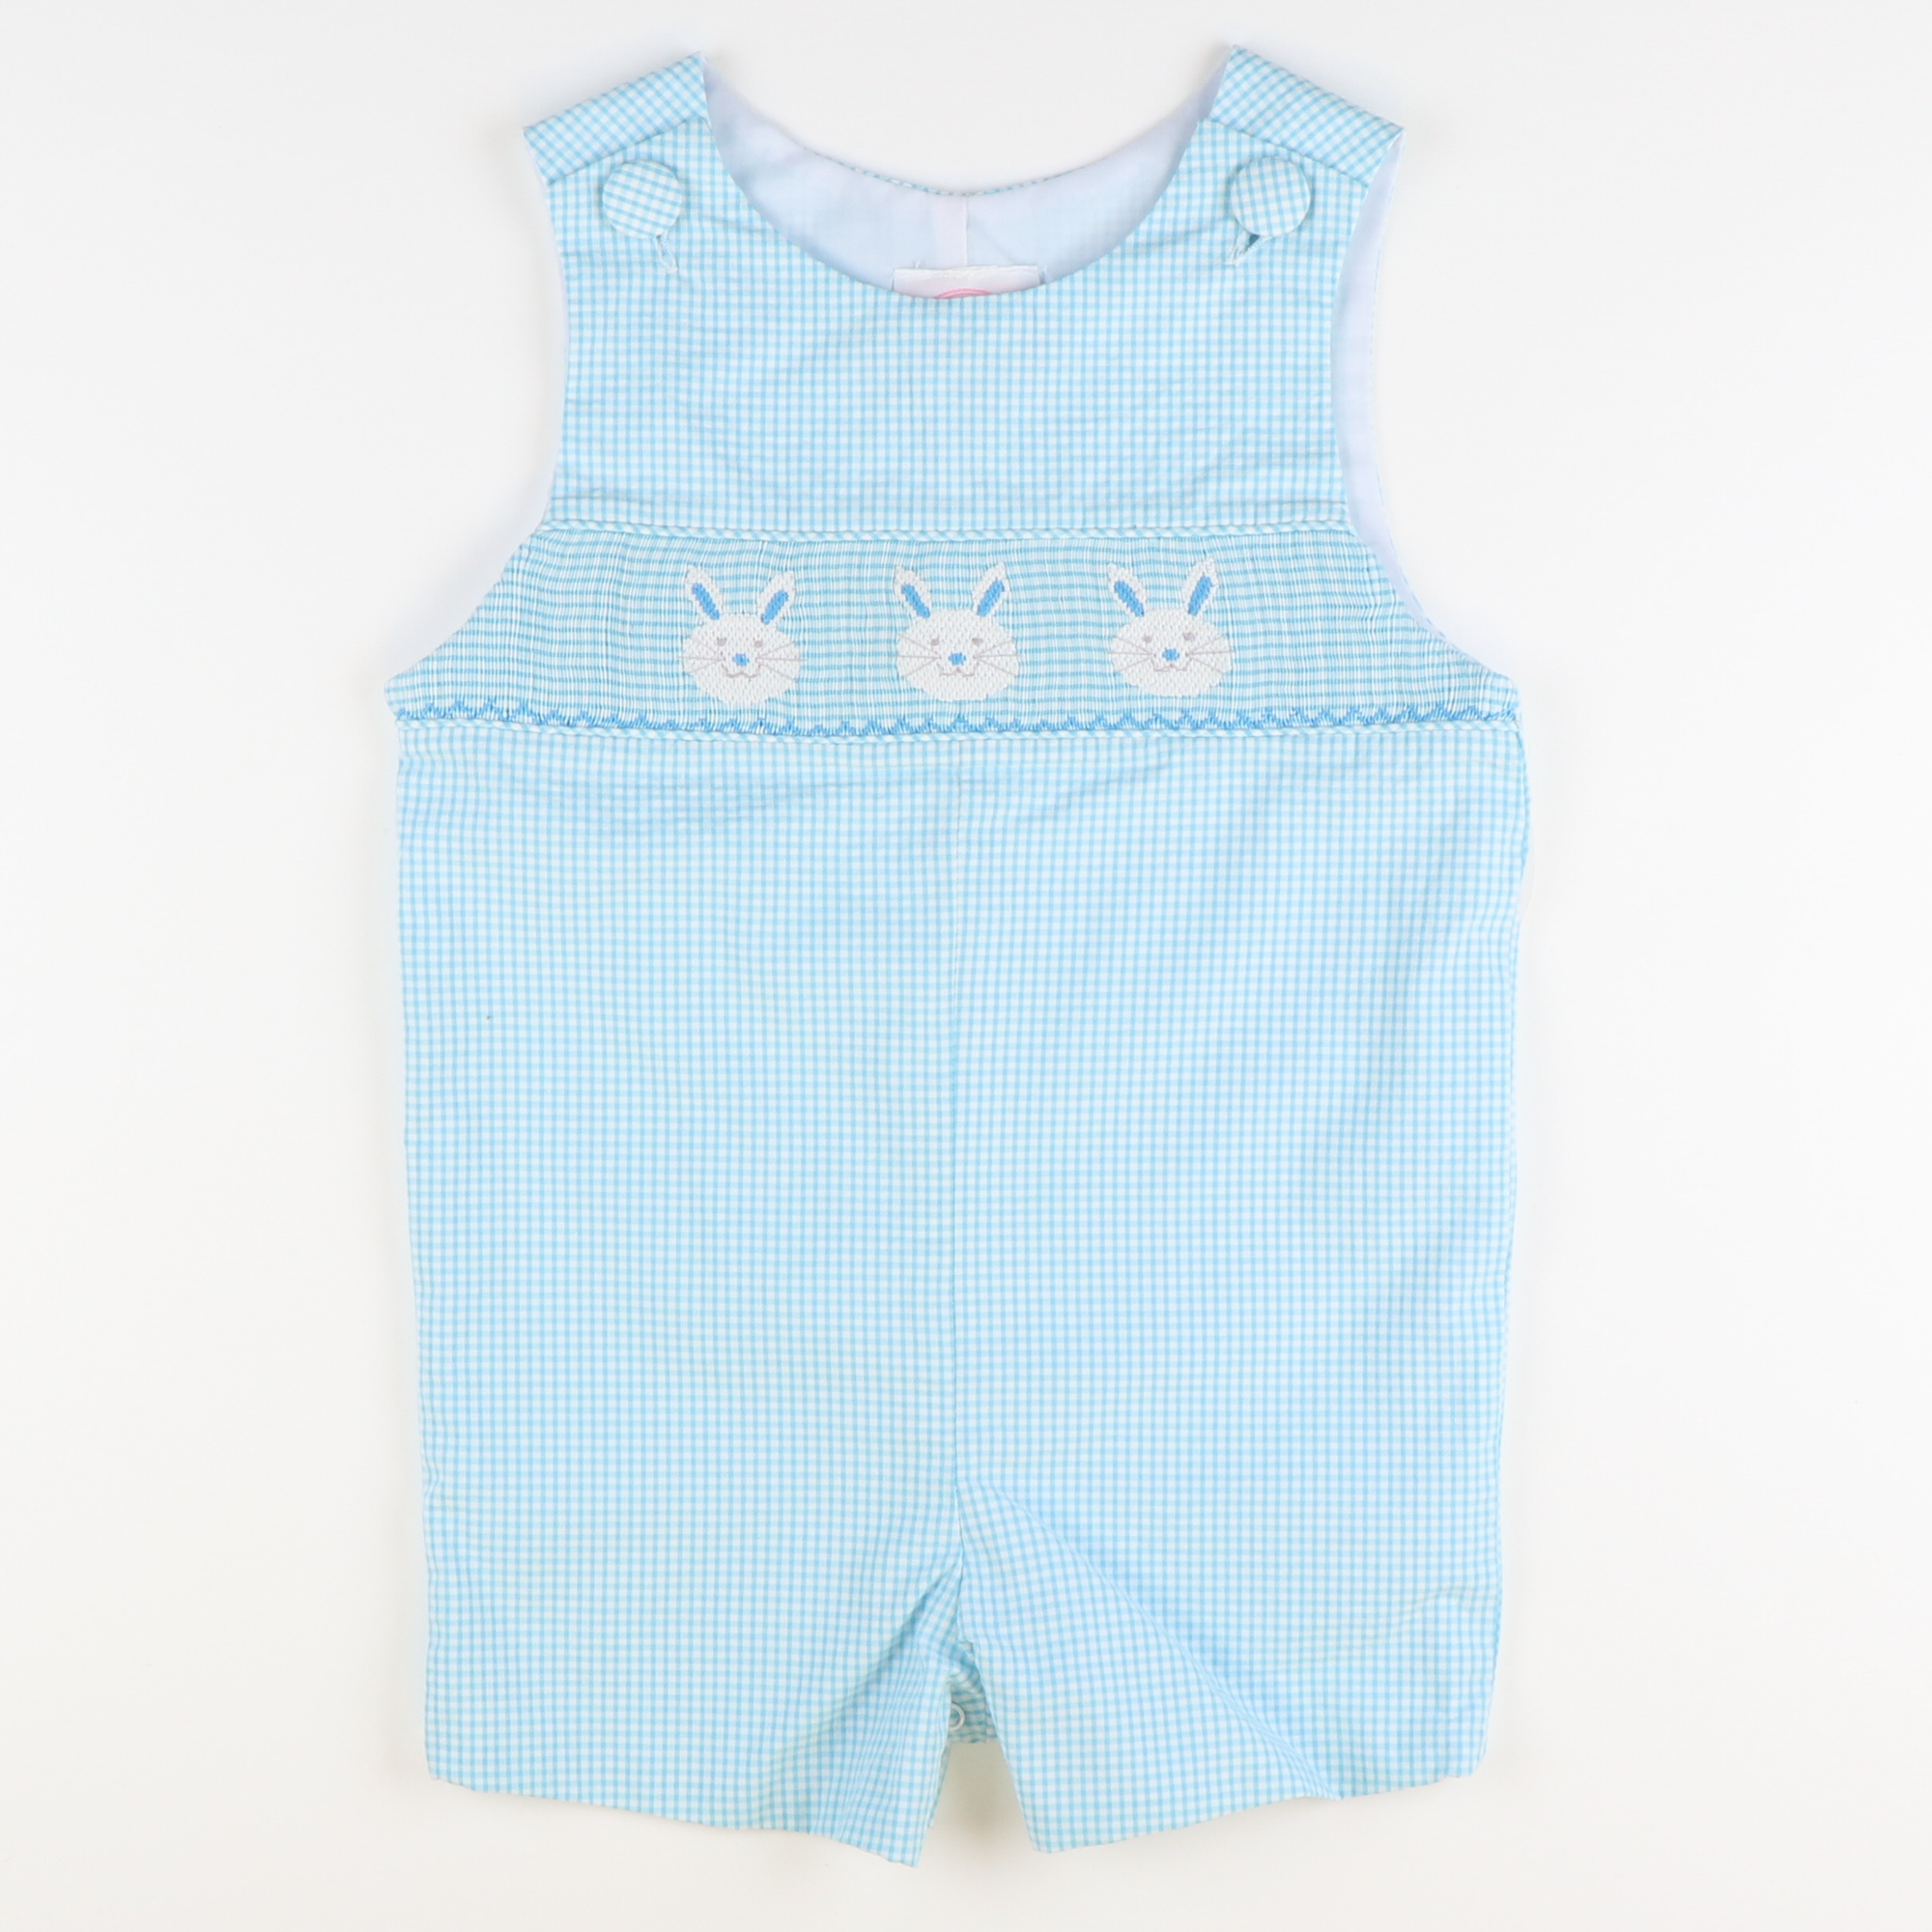 Smocked Bunny Face Shortall - Turquoise Mini Gingham Seersucker